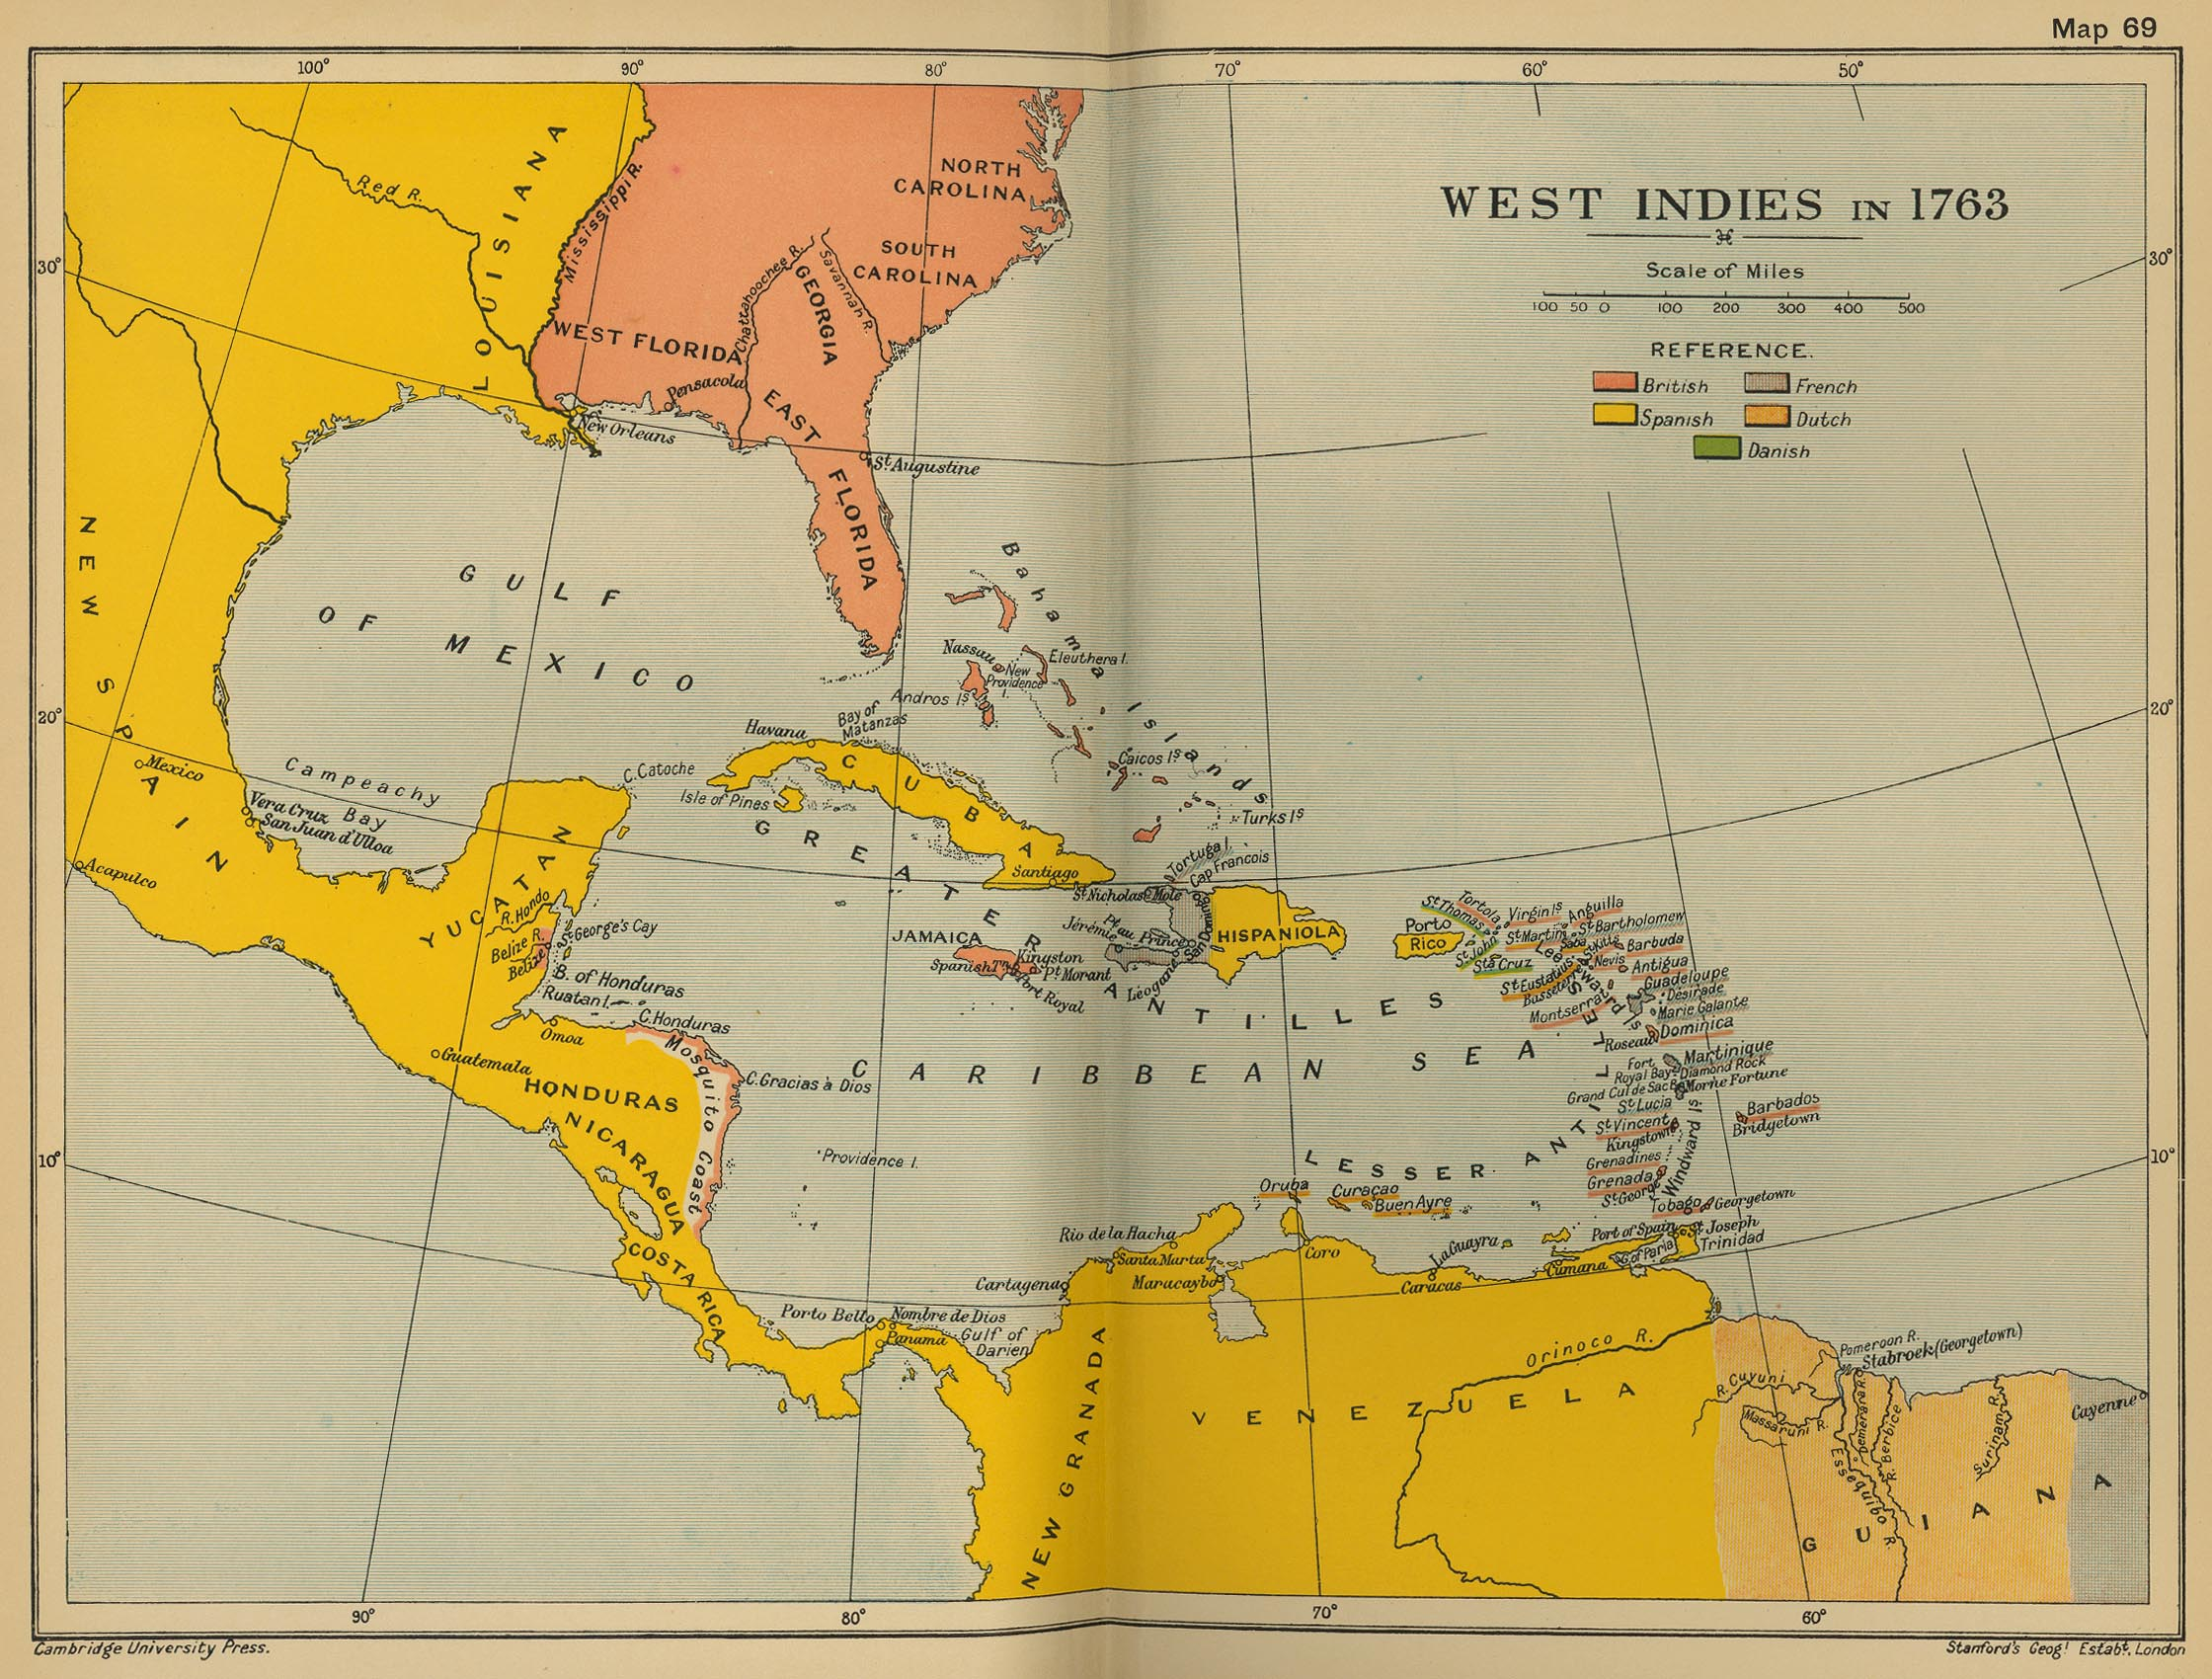 Map of the West Indies 1763